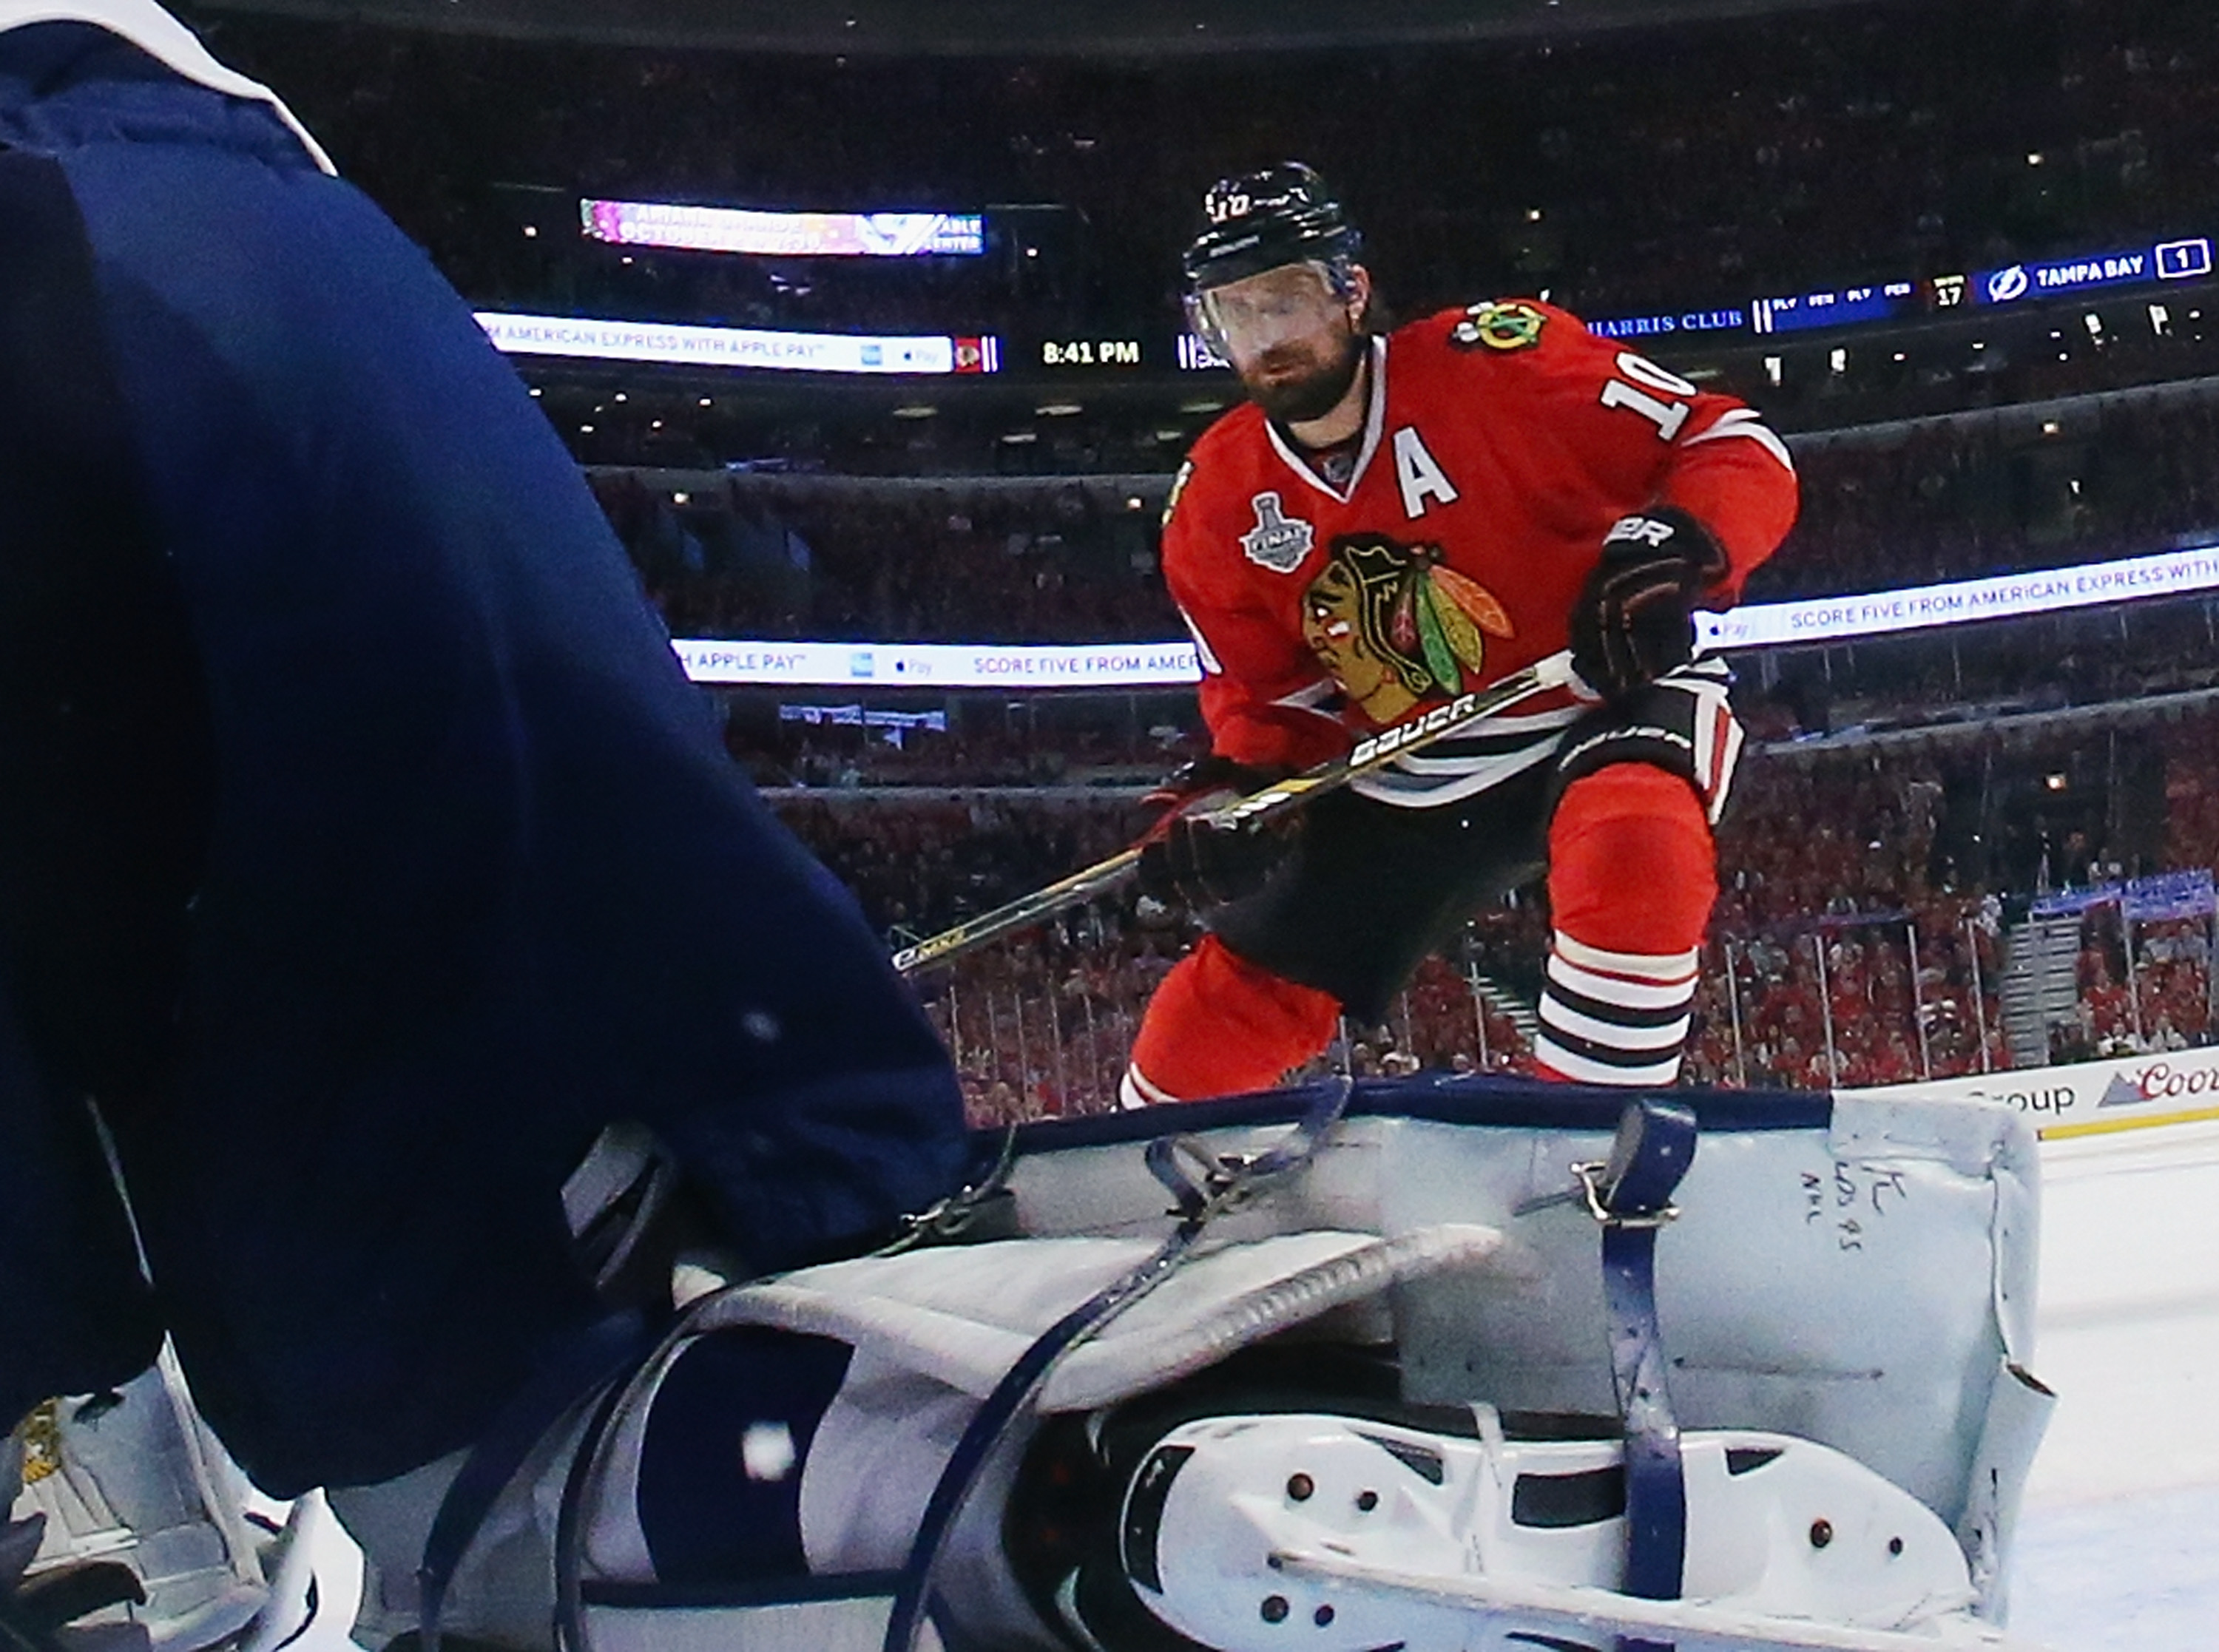 Patrick Sharp 10 of the Chicago Blackhawks skates against the Tampa Bay Lightning during Game